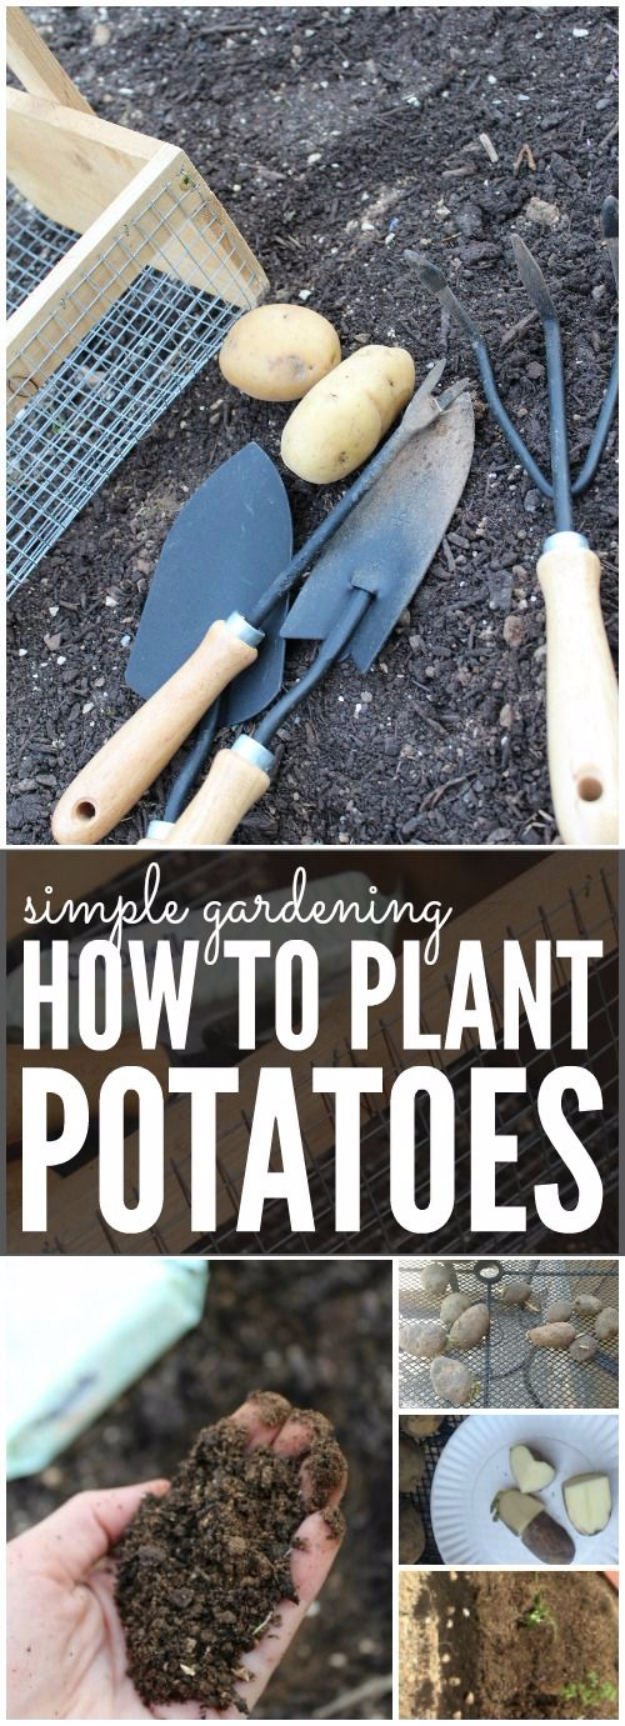 DIY Spring Gardening Projects - Planting Potatoes For Spring - Cool and Easy Planting Tips for Spring Garden - Step by Step Tutorials for Growing Seeds, Plants, Vegetables and Flowers in You Yard - DIY Project Ideas for Women and Men - Creative and Quick Backyard Ideas For Summer http://diyjoy.com/diy-spring-gardening